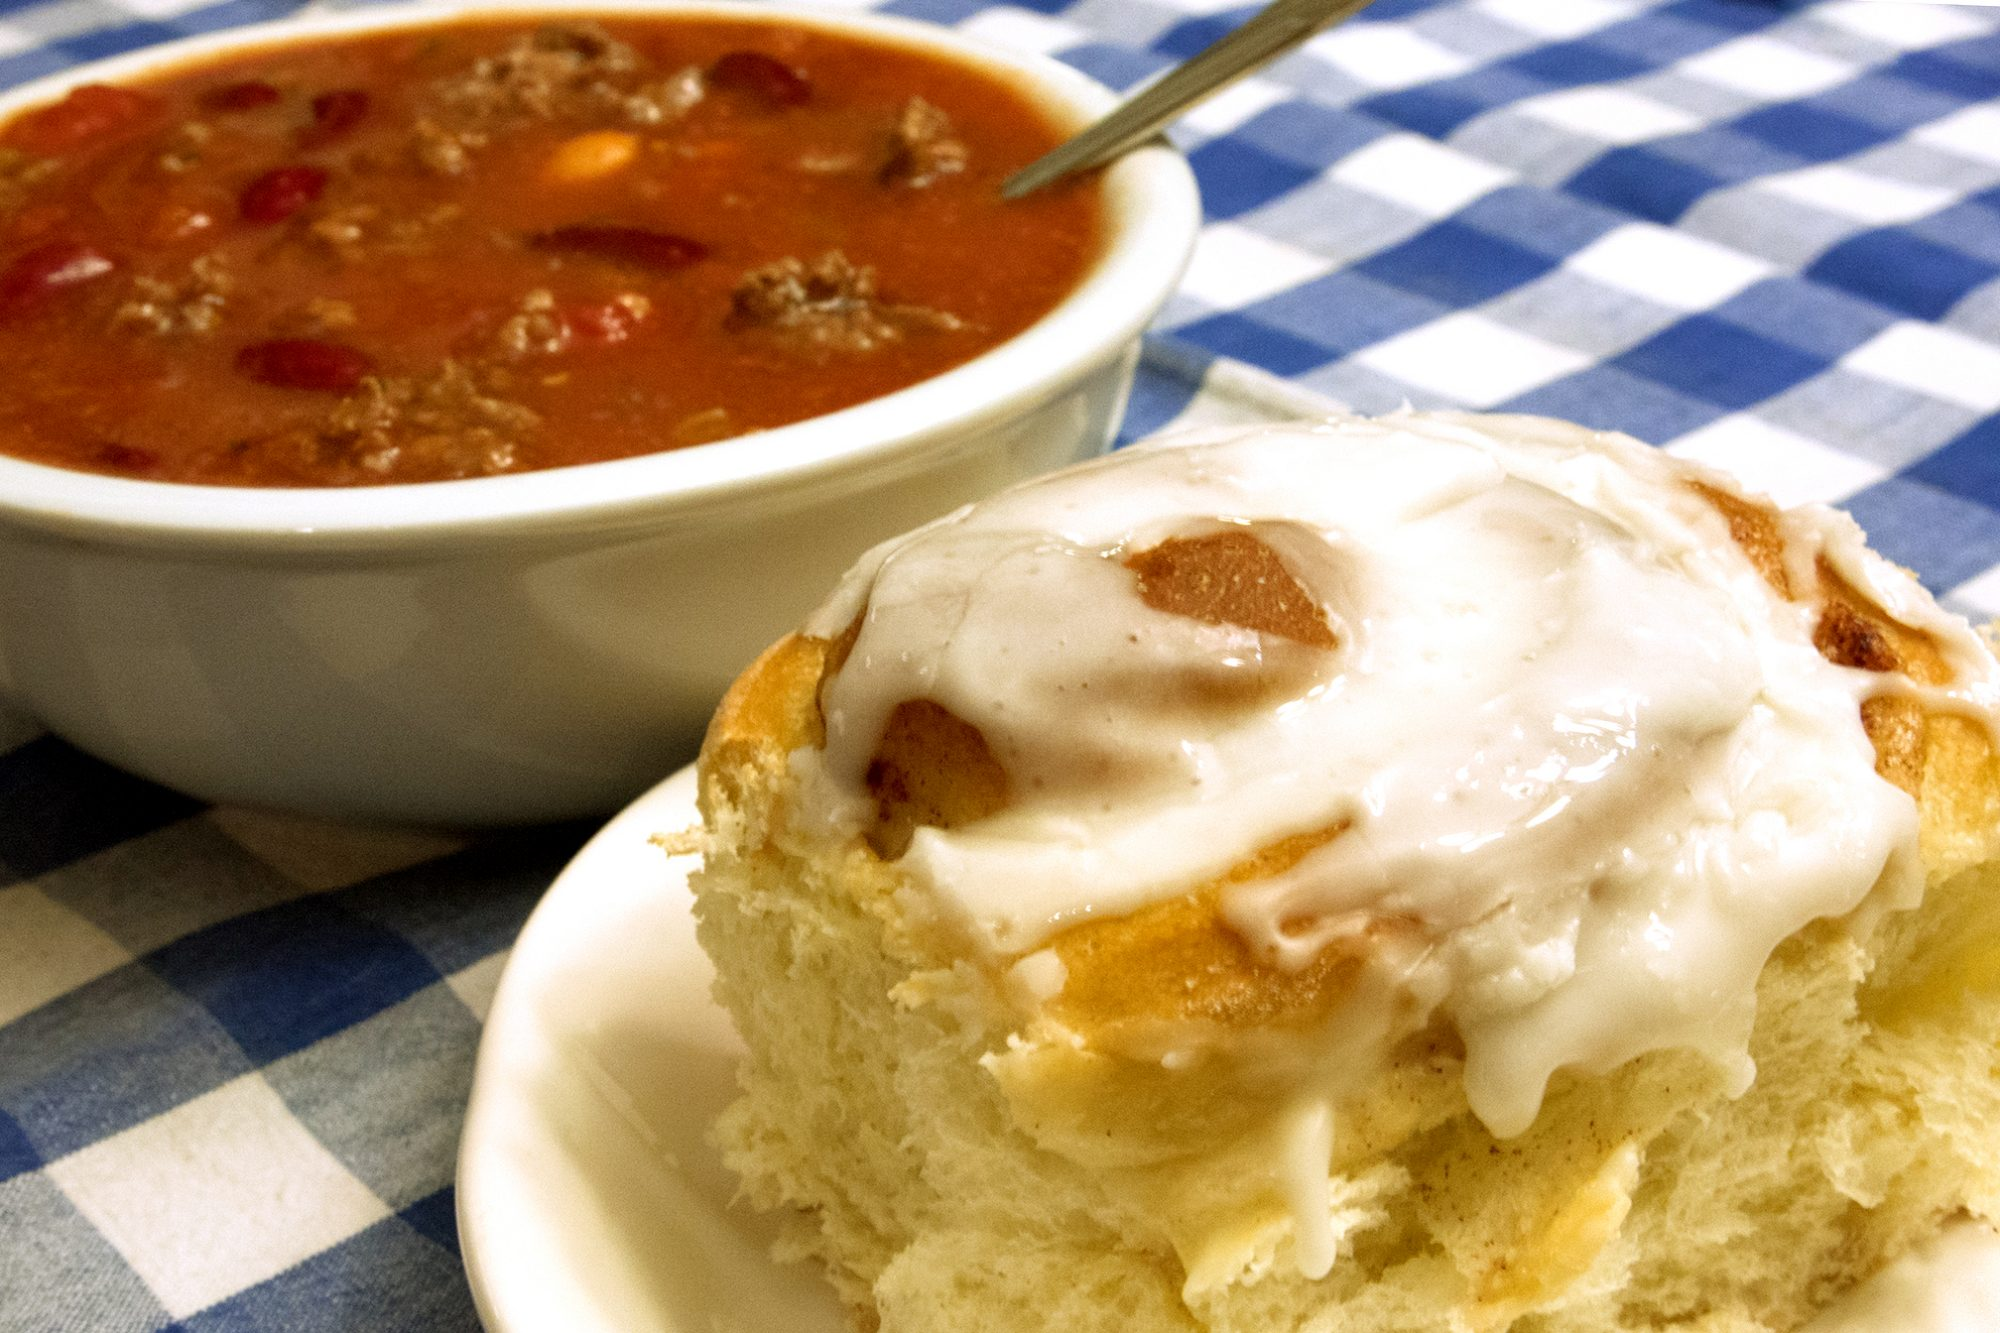 bowl of chili and cinnamon roll